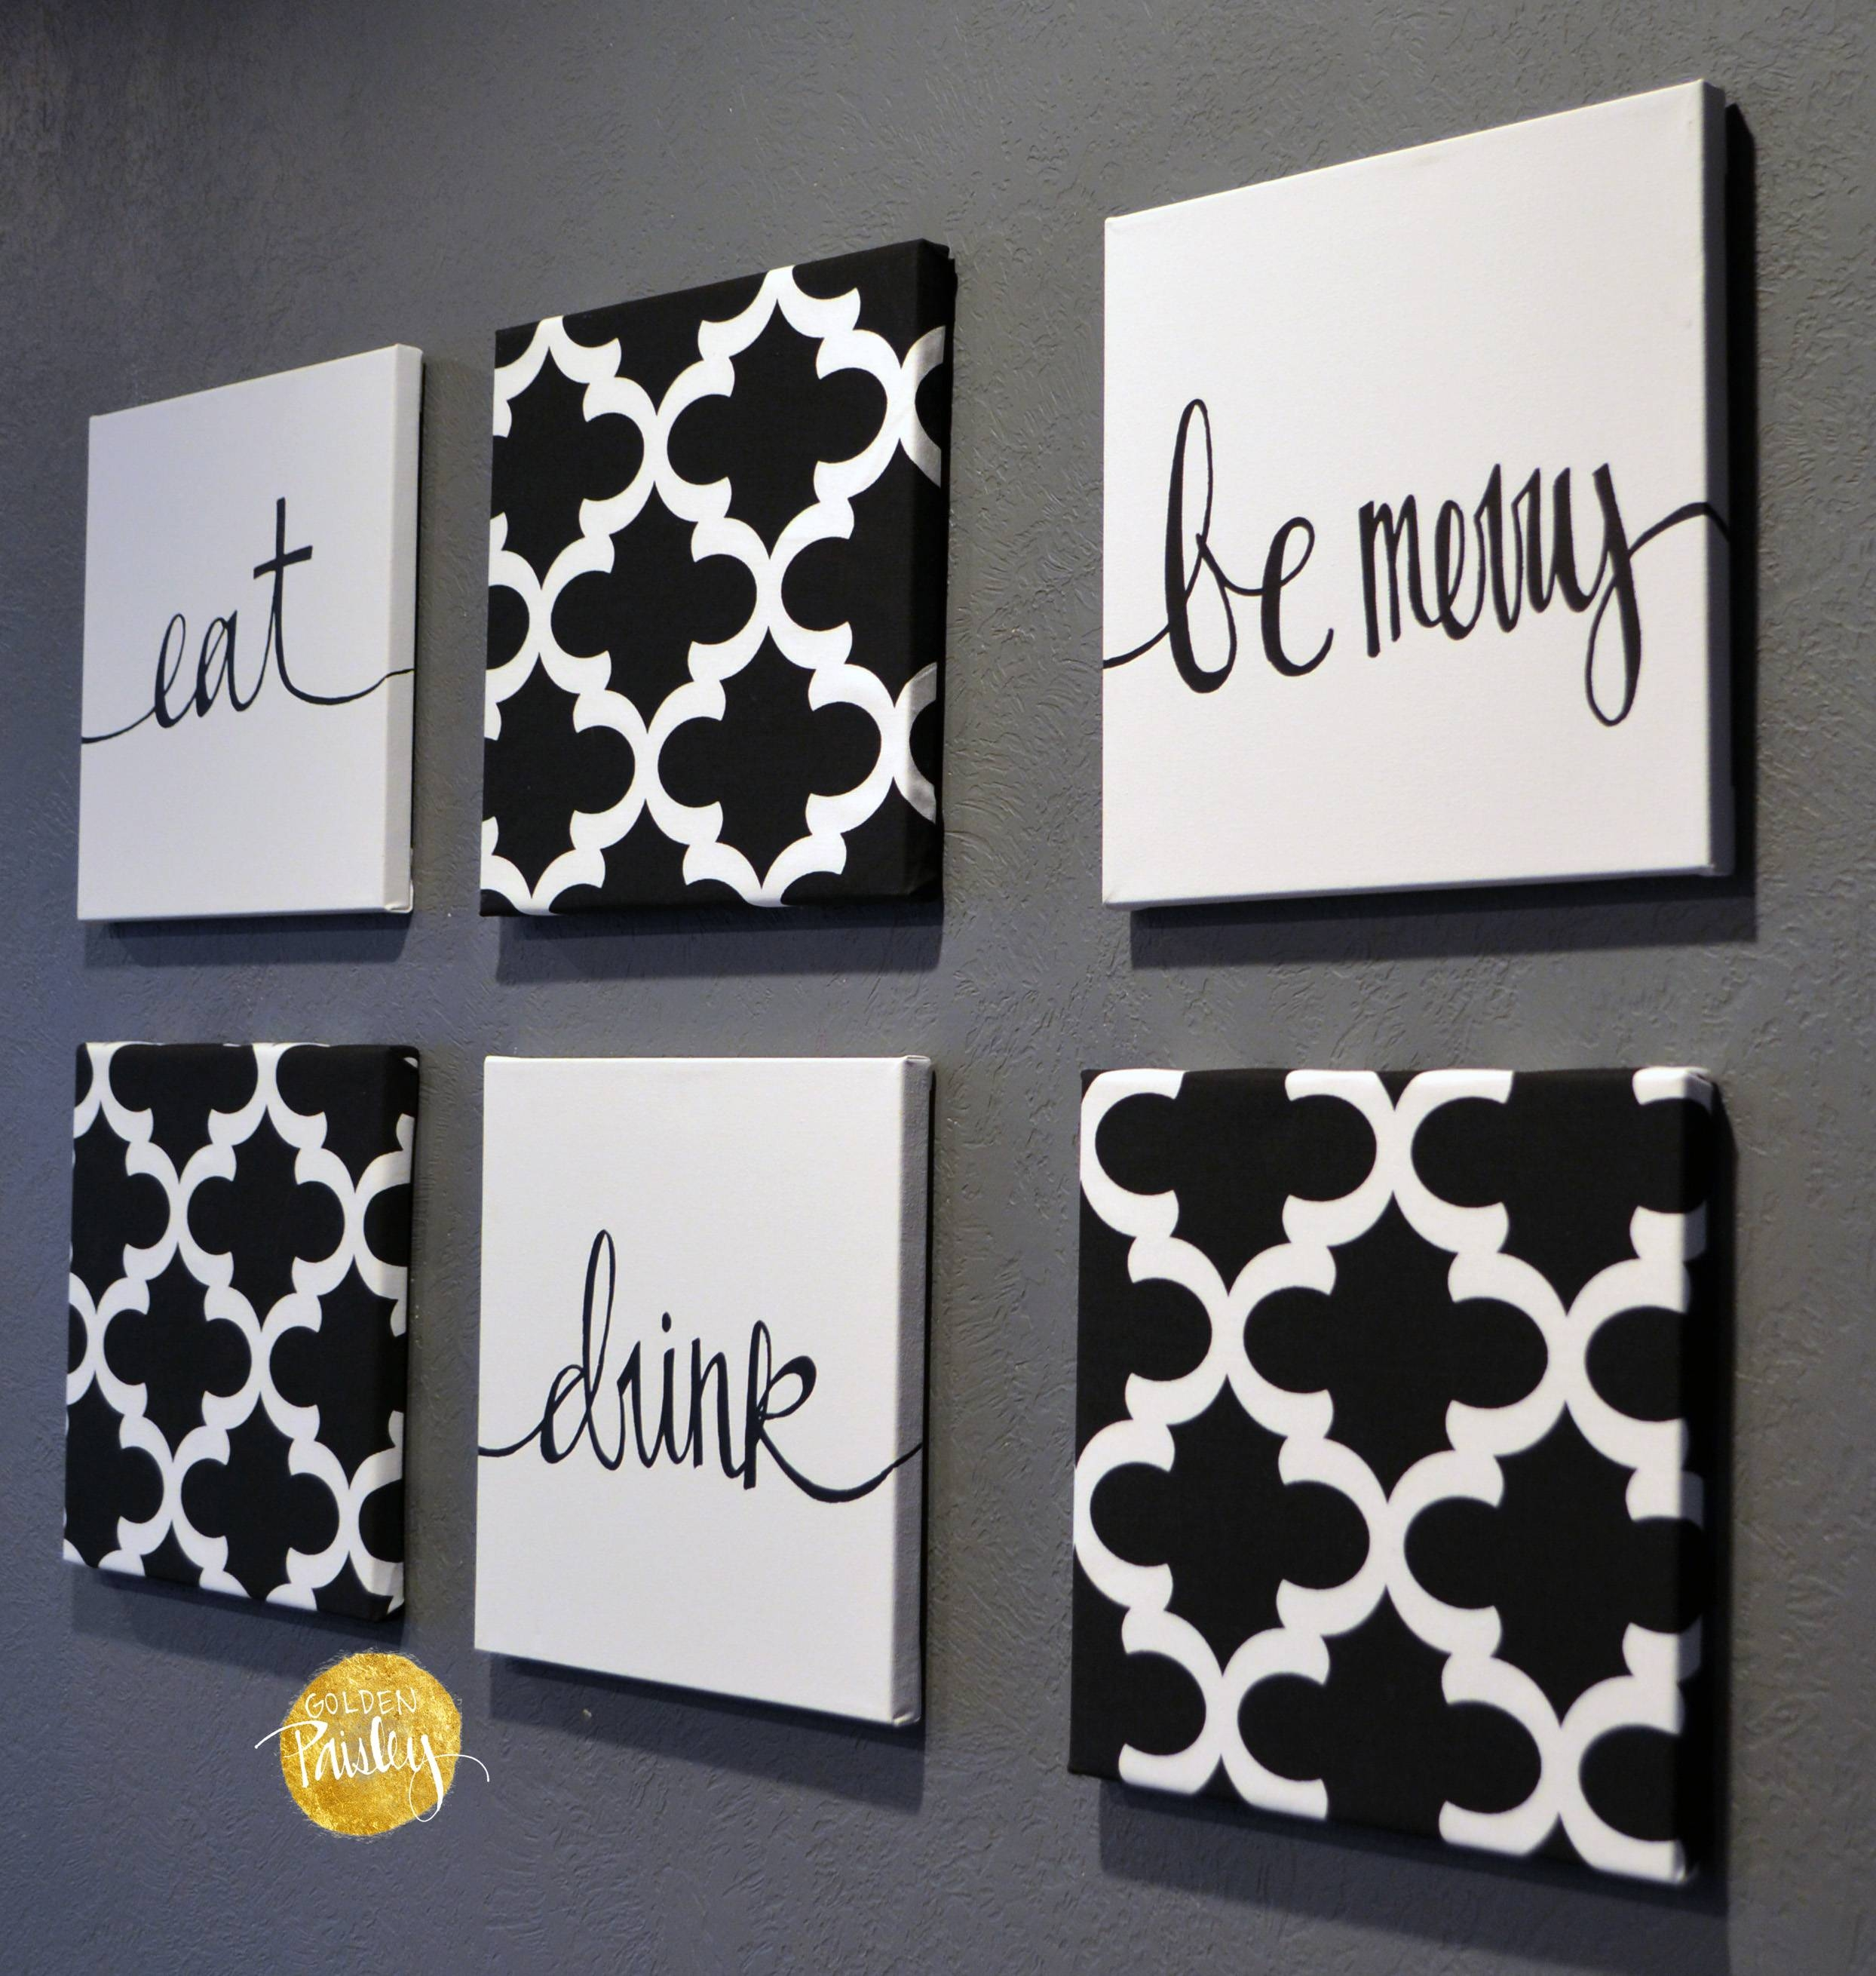 Black And White Moroccan 6 Pack Wall Art Within Best And Newest Black And White Wall Art Sets (View 8 of 20)